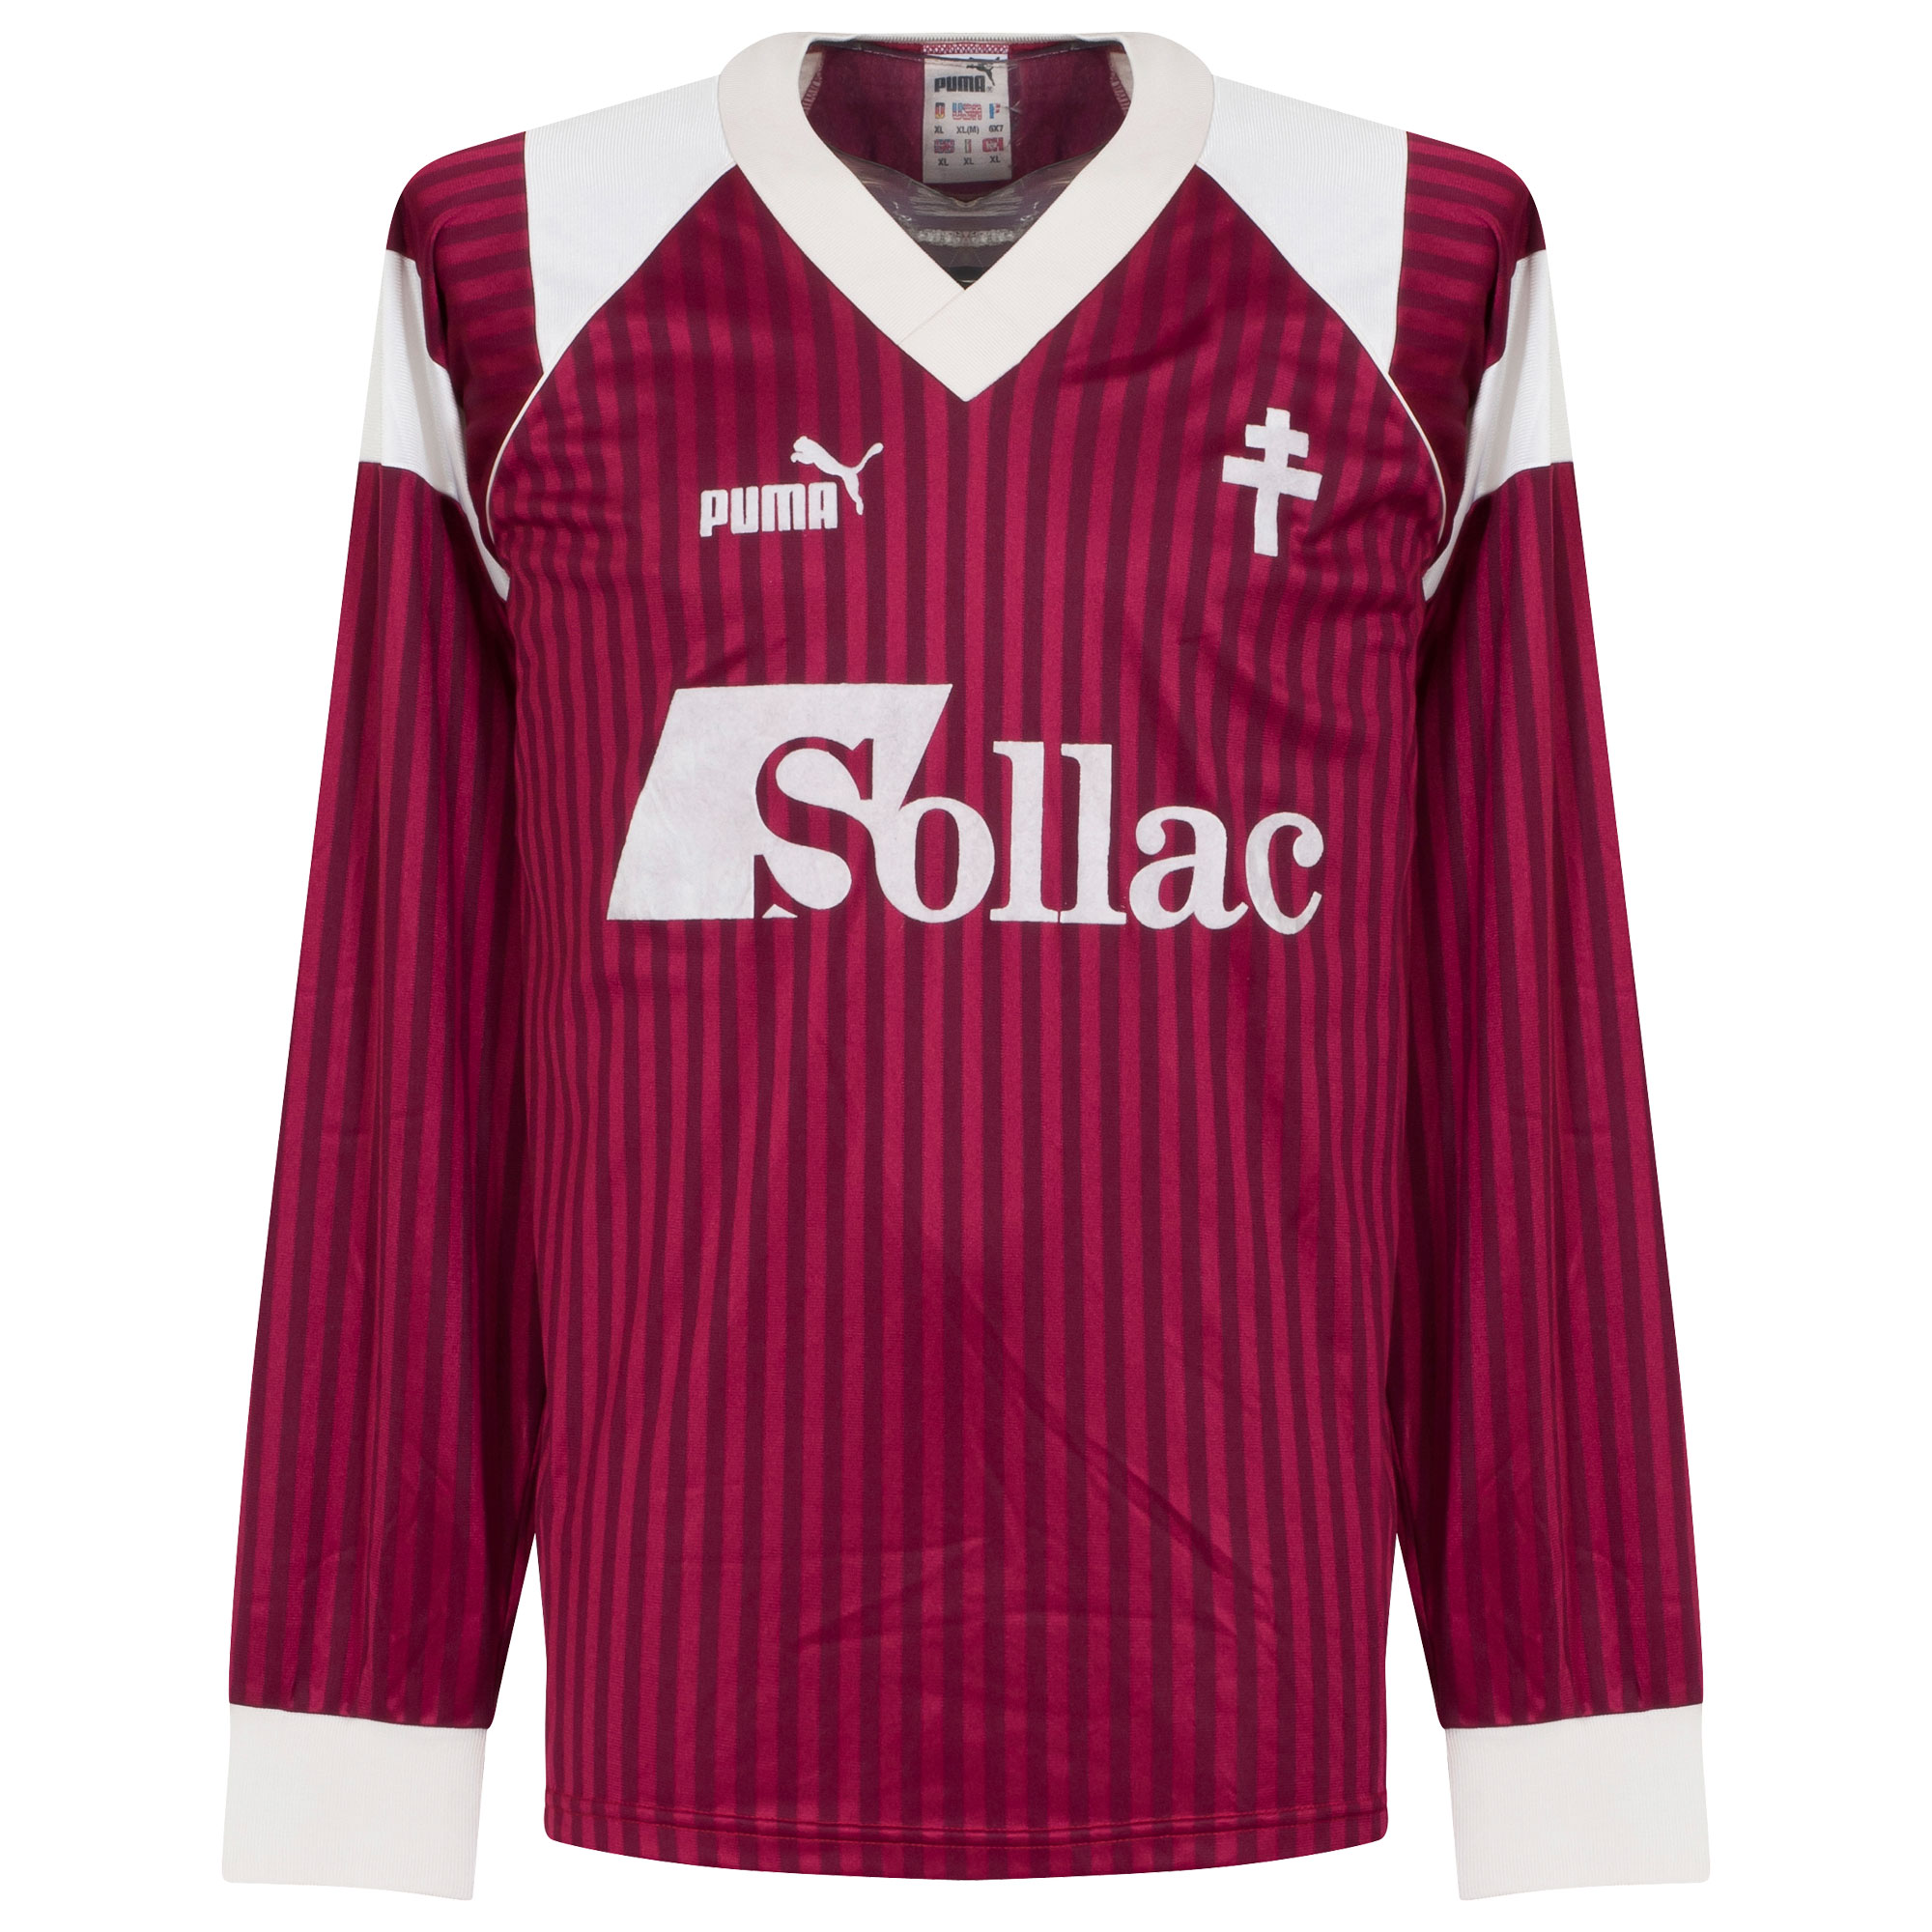 Puma FC Metz 1990-1992 Home Shirt L/S - USED Condition (Great) - Size